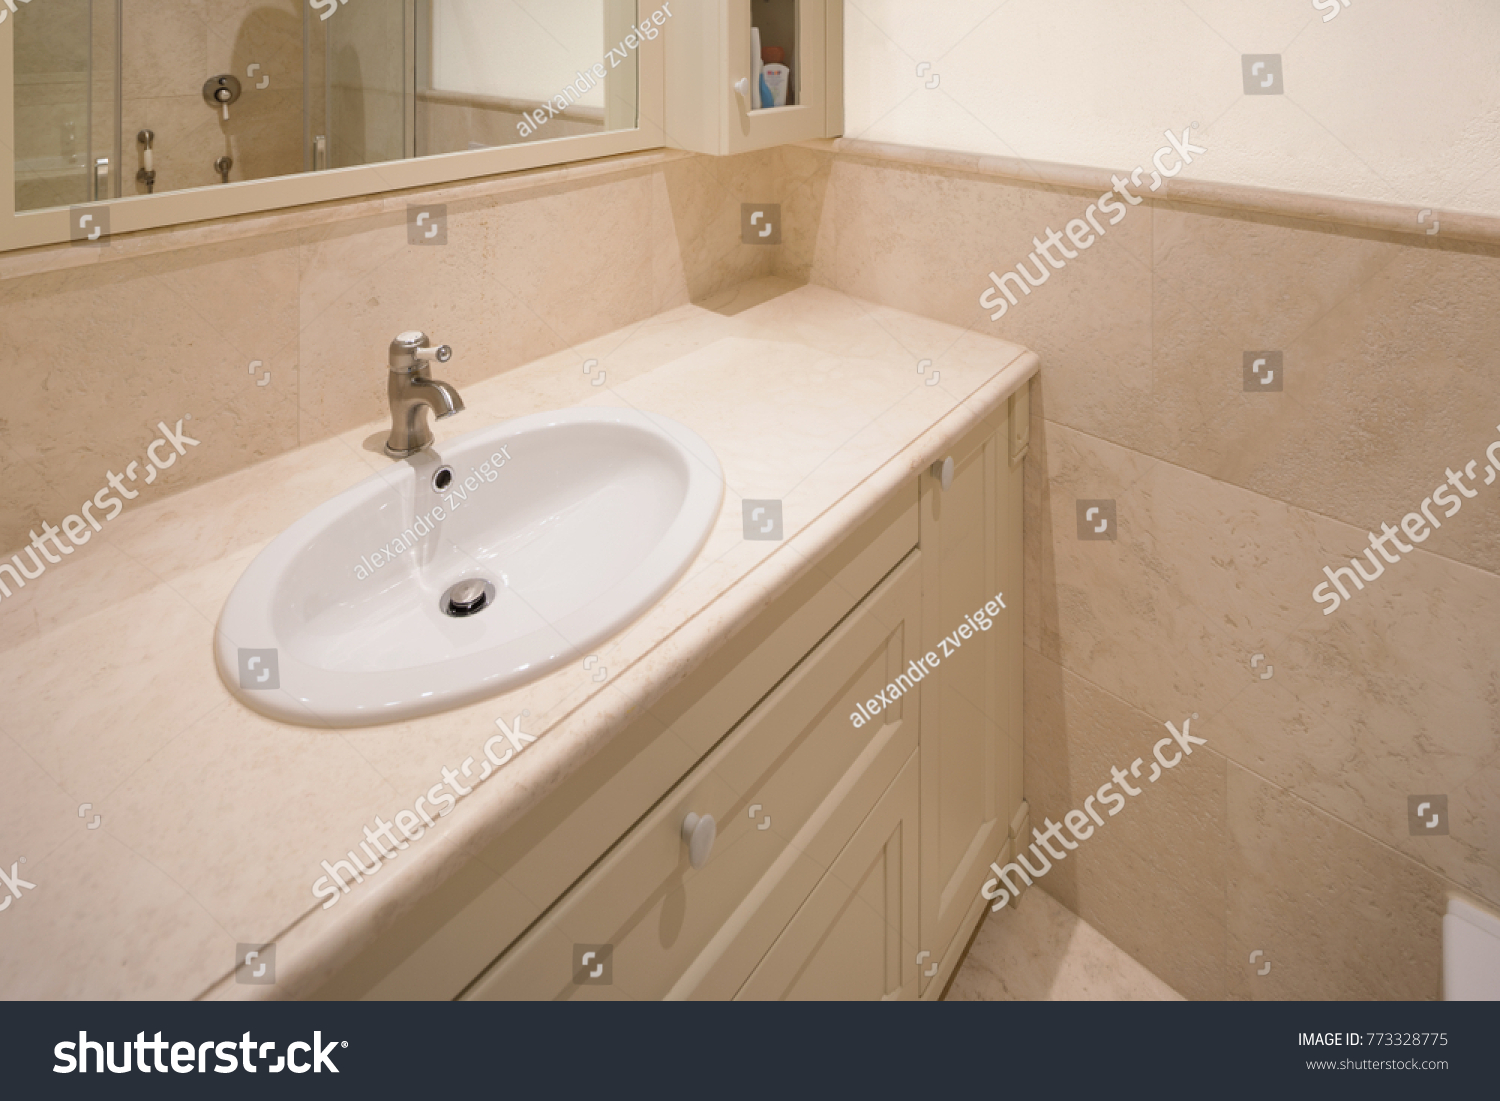 Clean and new hotel bathroom and tub for travel concepts. | EZ Canvas